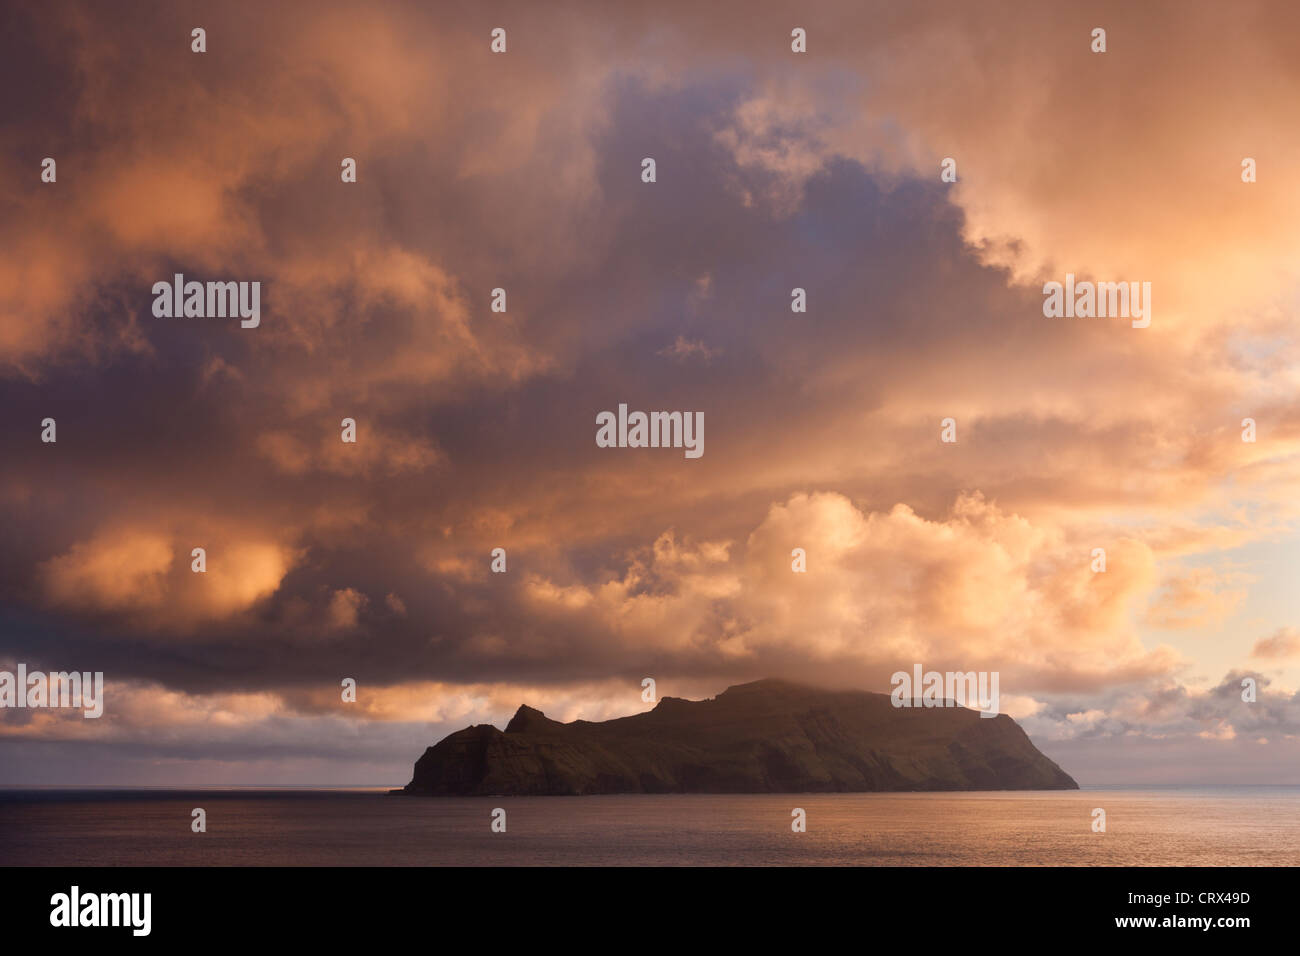 Spectacular sunset skies above the island of Mykines, Faroe Islands. Spring (May) 2012. Stock Foto